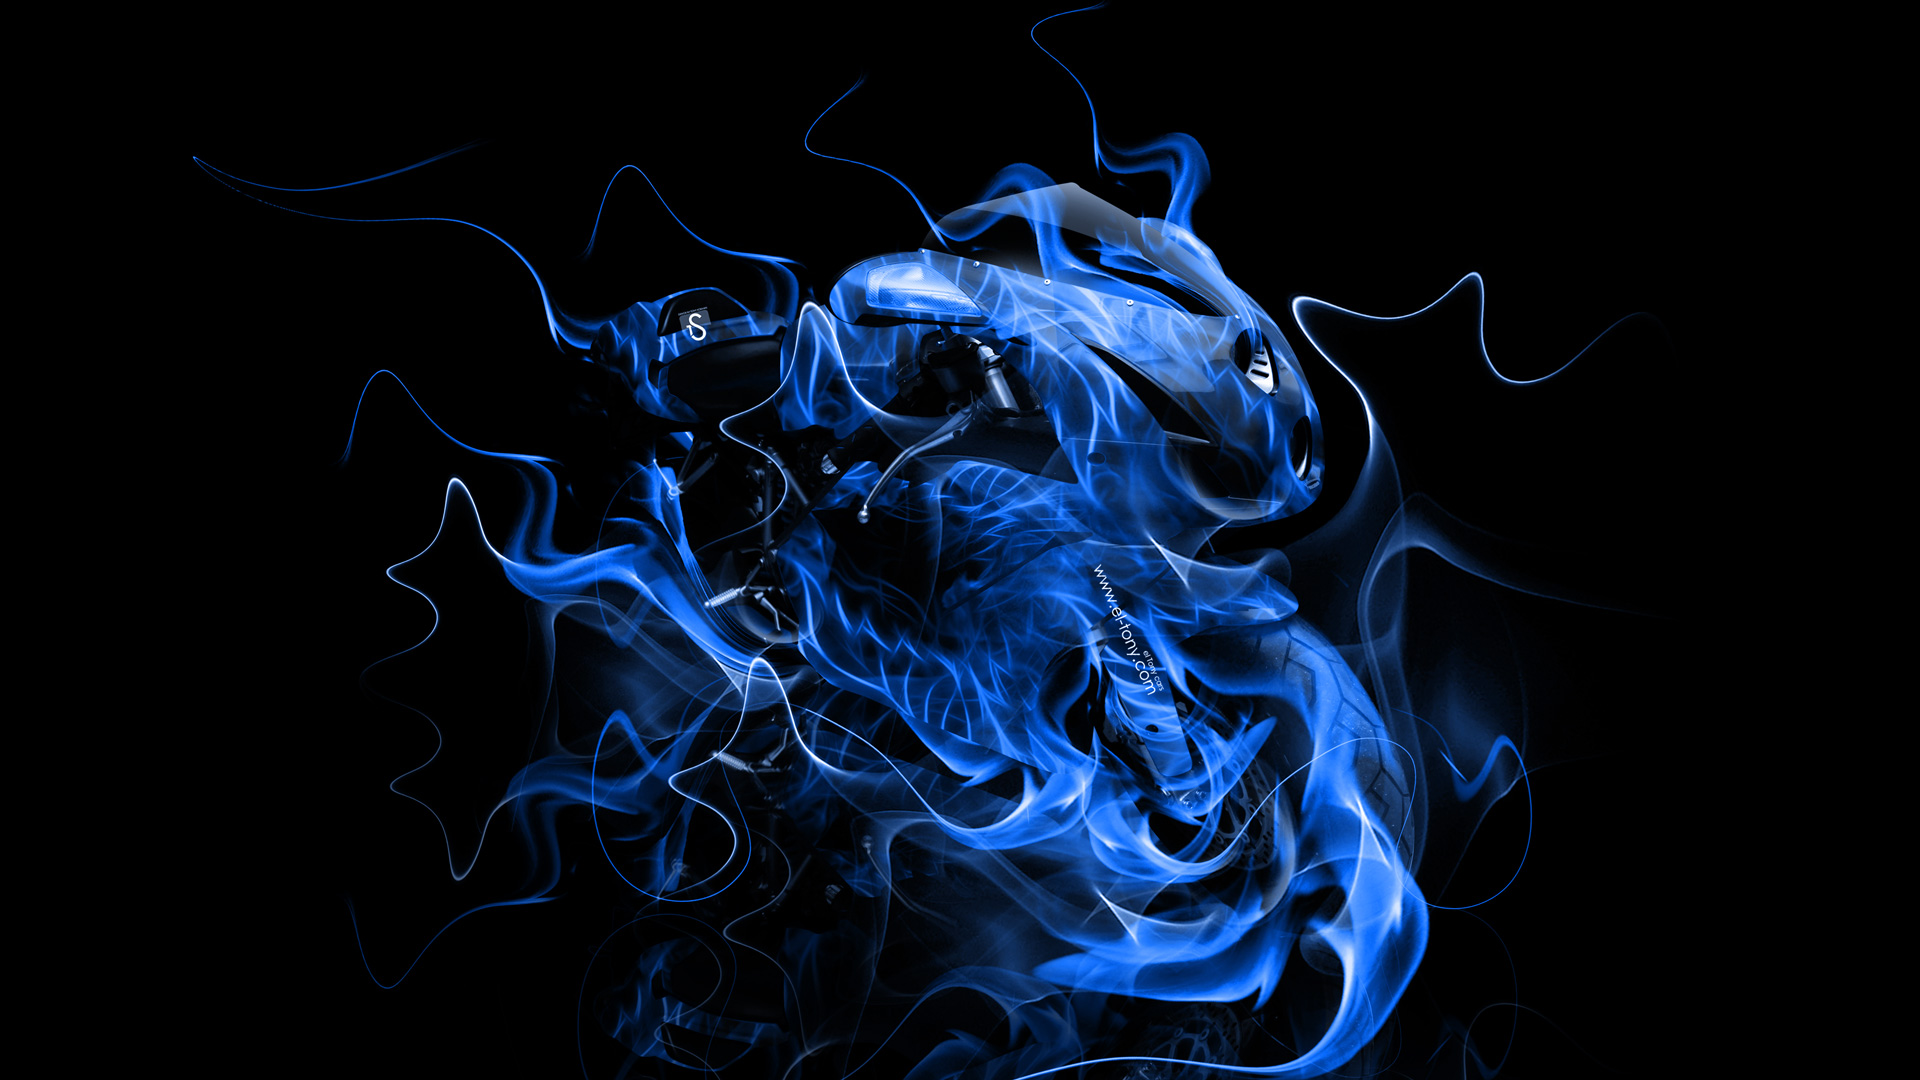 neon flame motorcycle wallpaper - photo #2